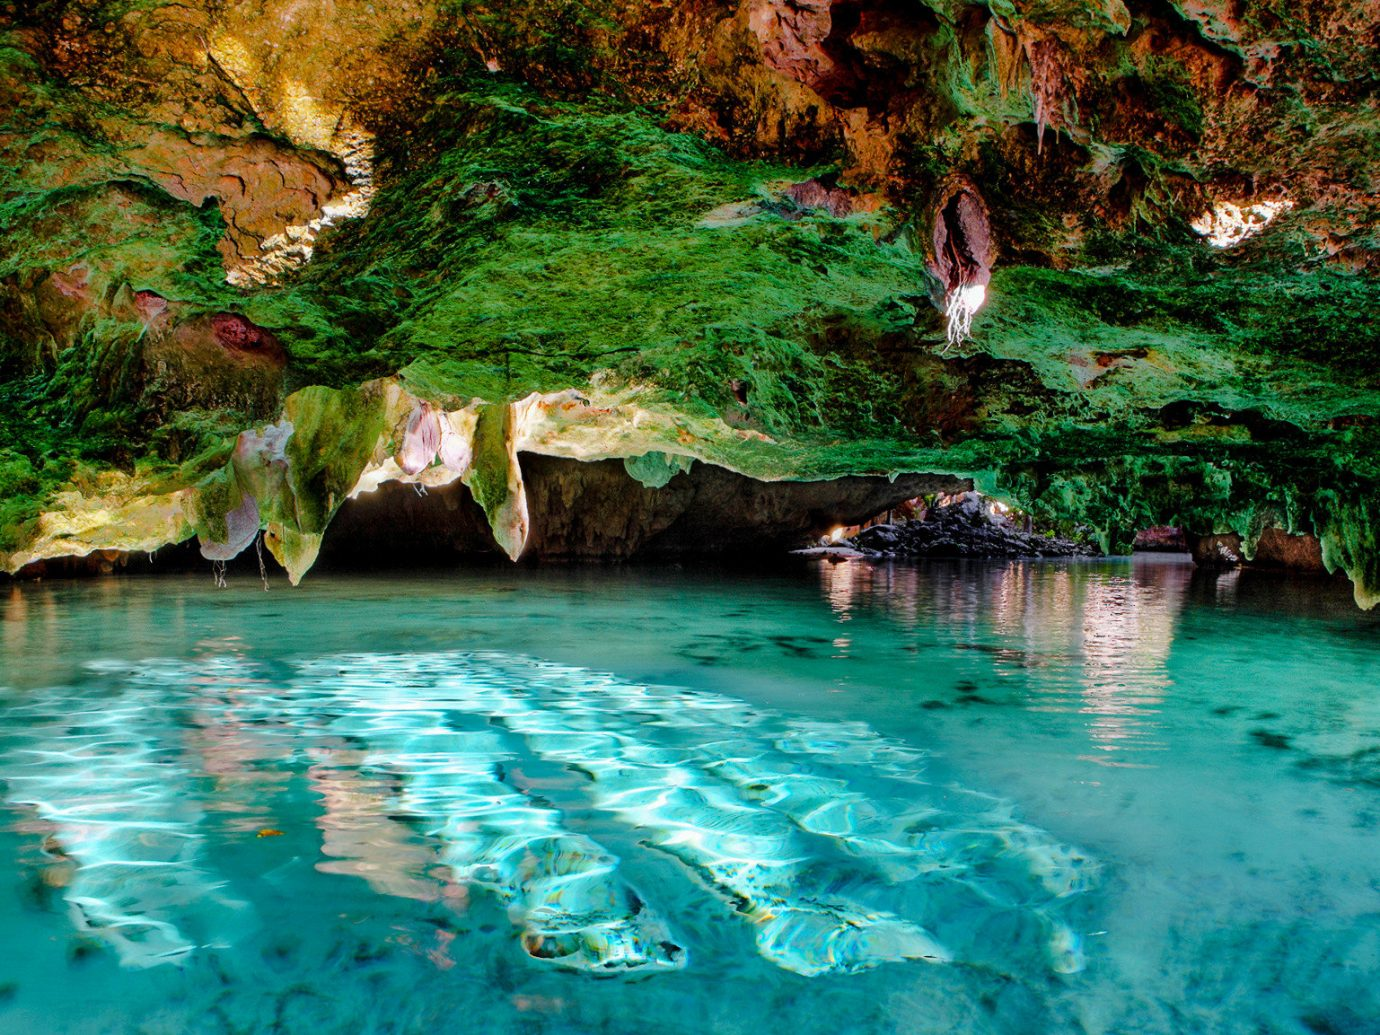 Hotels Mexico Travel Tips Trip Ideas Weekend Getaways water Nature green body of water outdoor vegetation nature reserve watercourse formation fluvial landforms of streams reflection coastal and oceanic landforms stream sea cave Sea rock Lagoon swimming pool water resources underground lake water feature landscape tree mineral spring tropics pond swimming cave surrounded